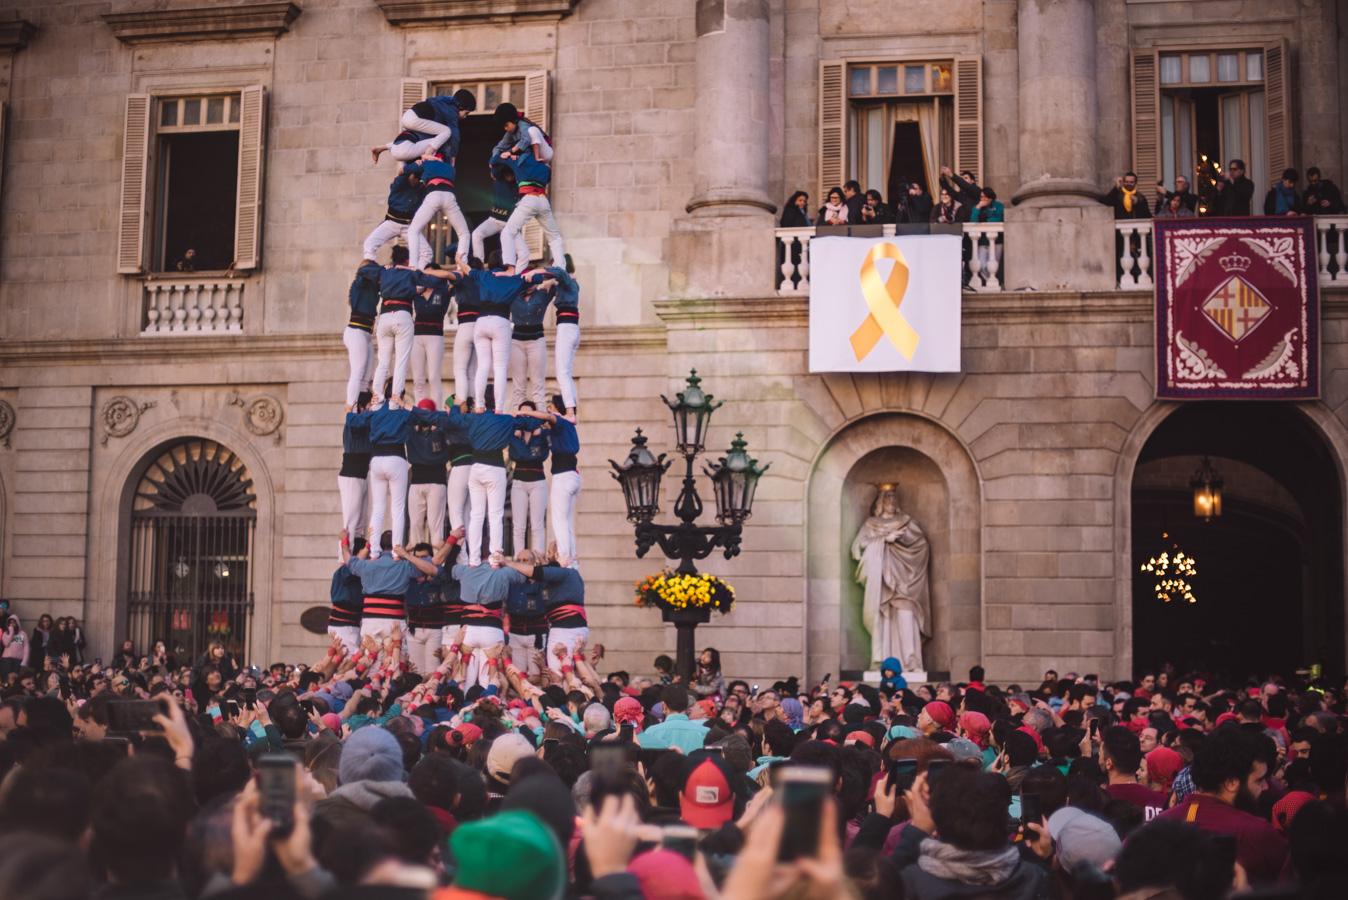 Castells in Barcelona are a great local experience